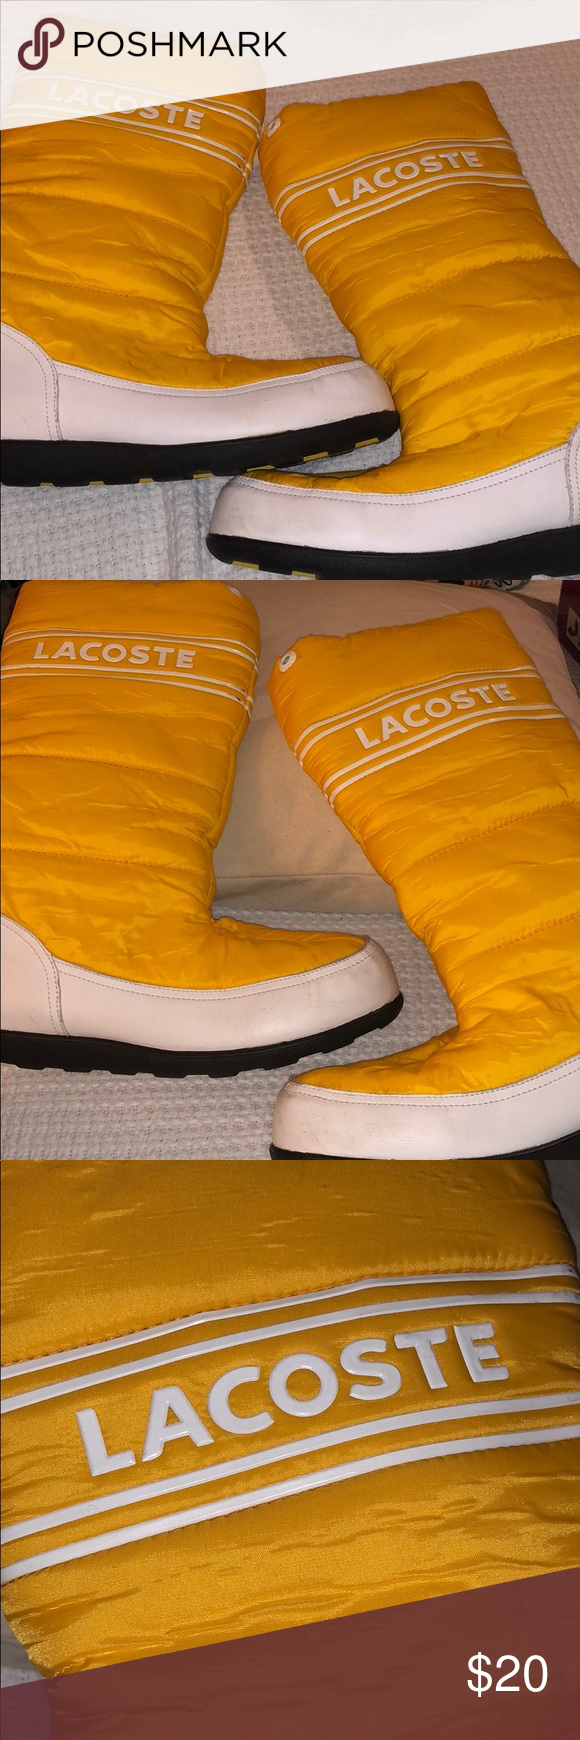 Women's Lacoste Snow Boots Bright yellow boots, (worn